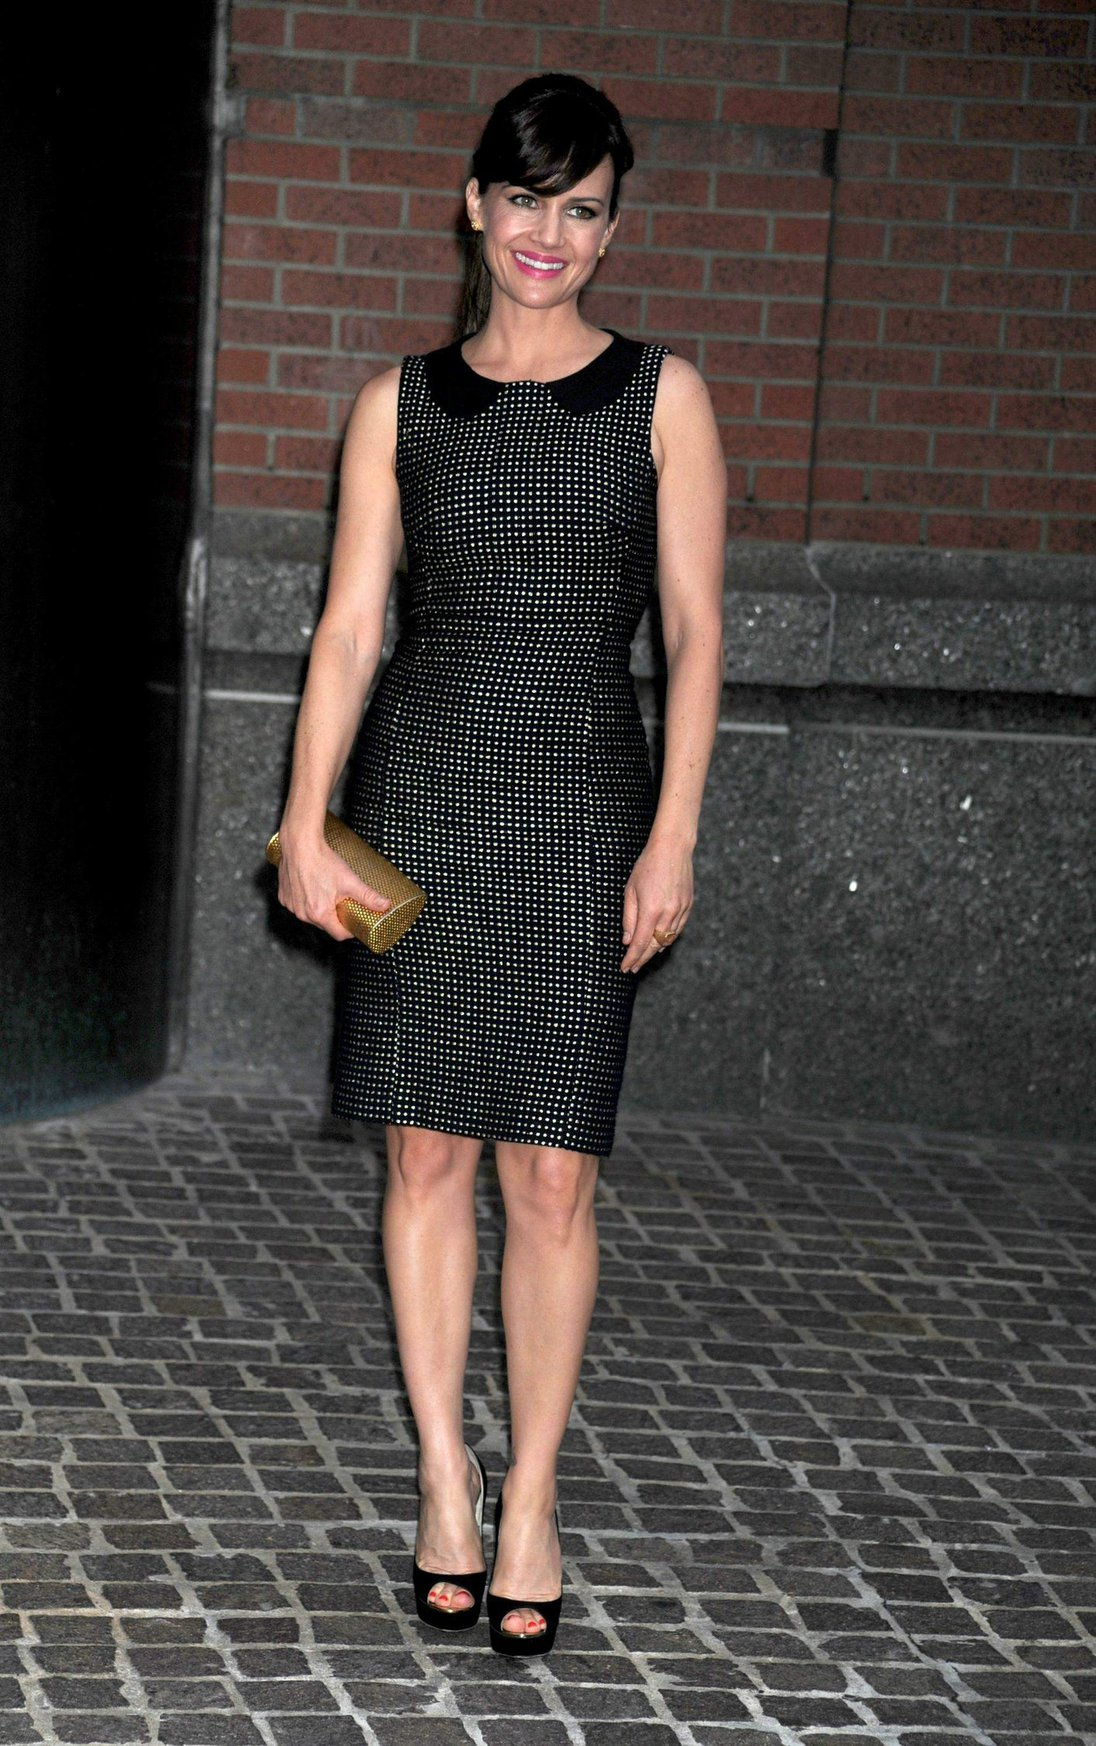 Carla Gugino attends screening of LD Entertainment's  Killer Joe  July 23, 2012